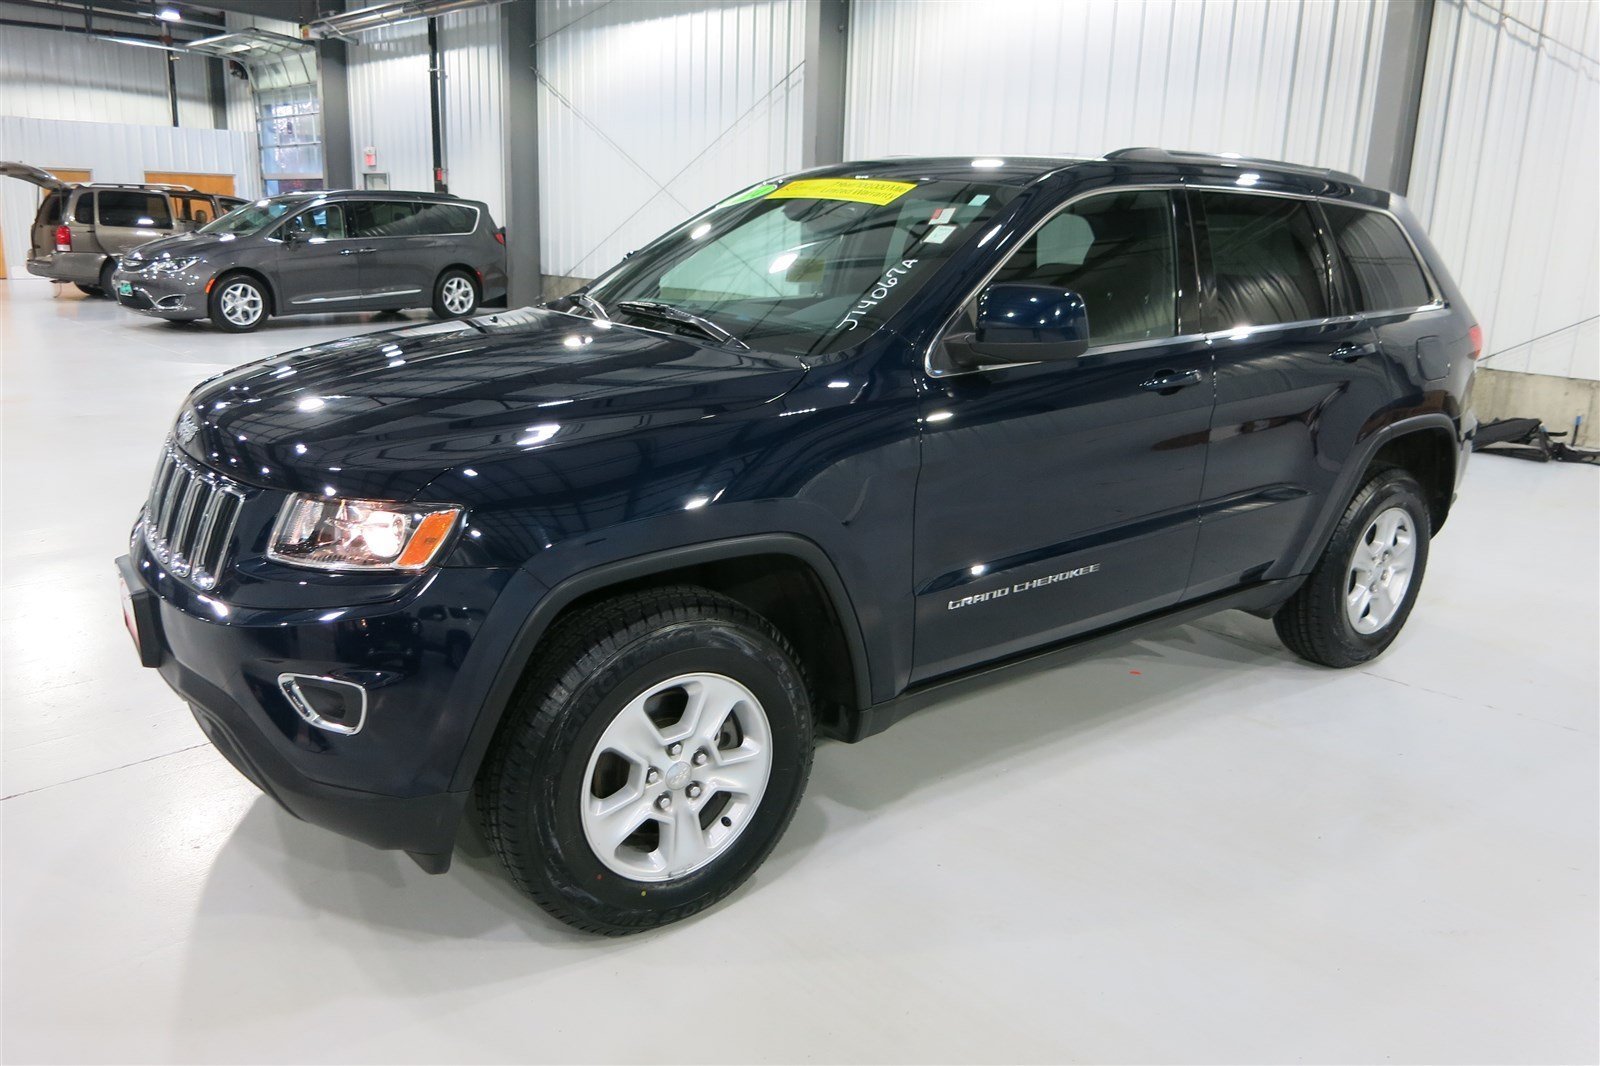 pre owned 2014 jeep grand cherokee laredo sport utility in marshfield j14067a quirk chrysler. Black Bedroom Furniture Sets. Home Design Ideas